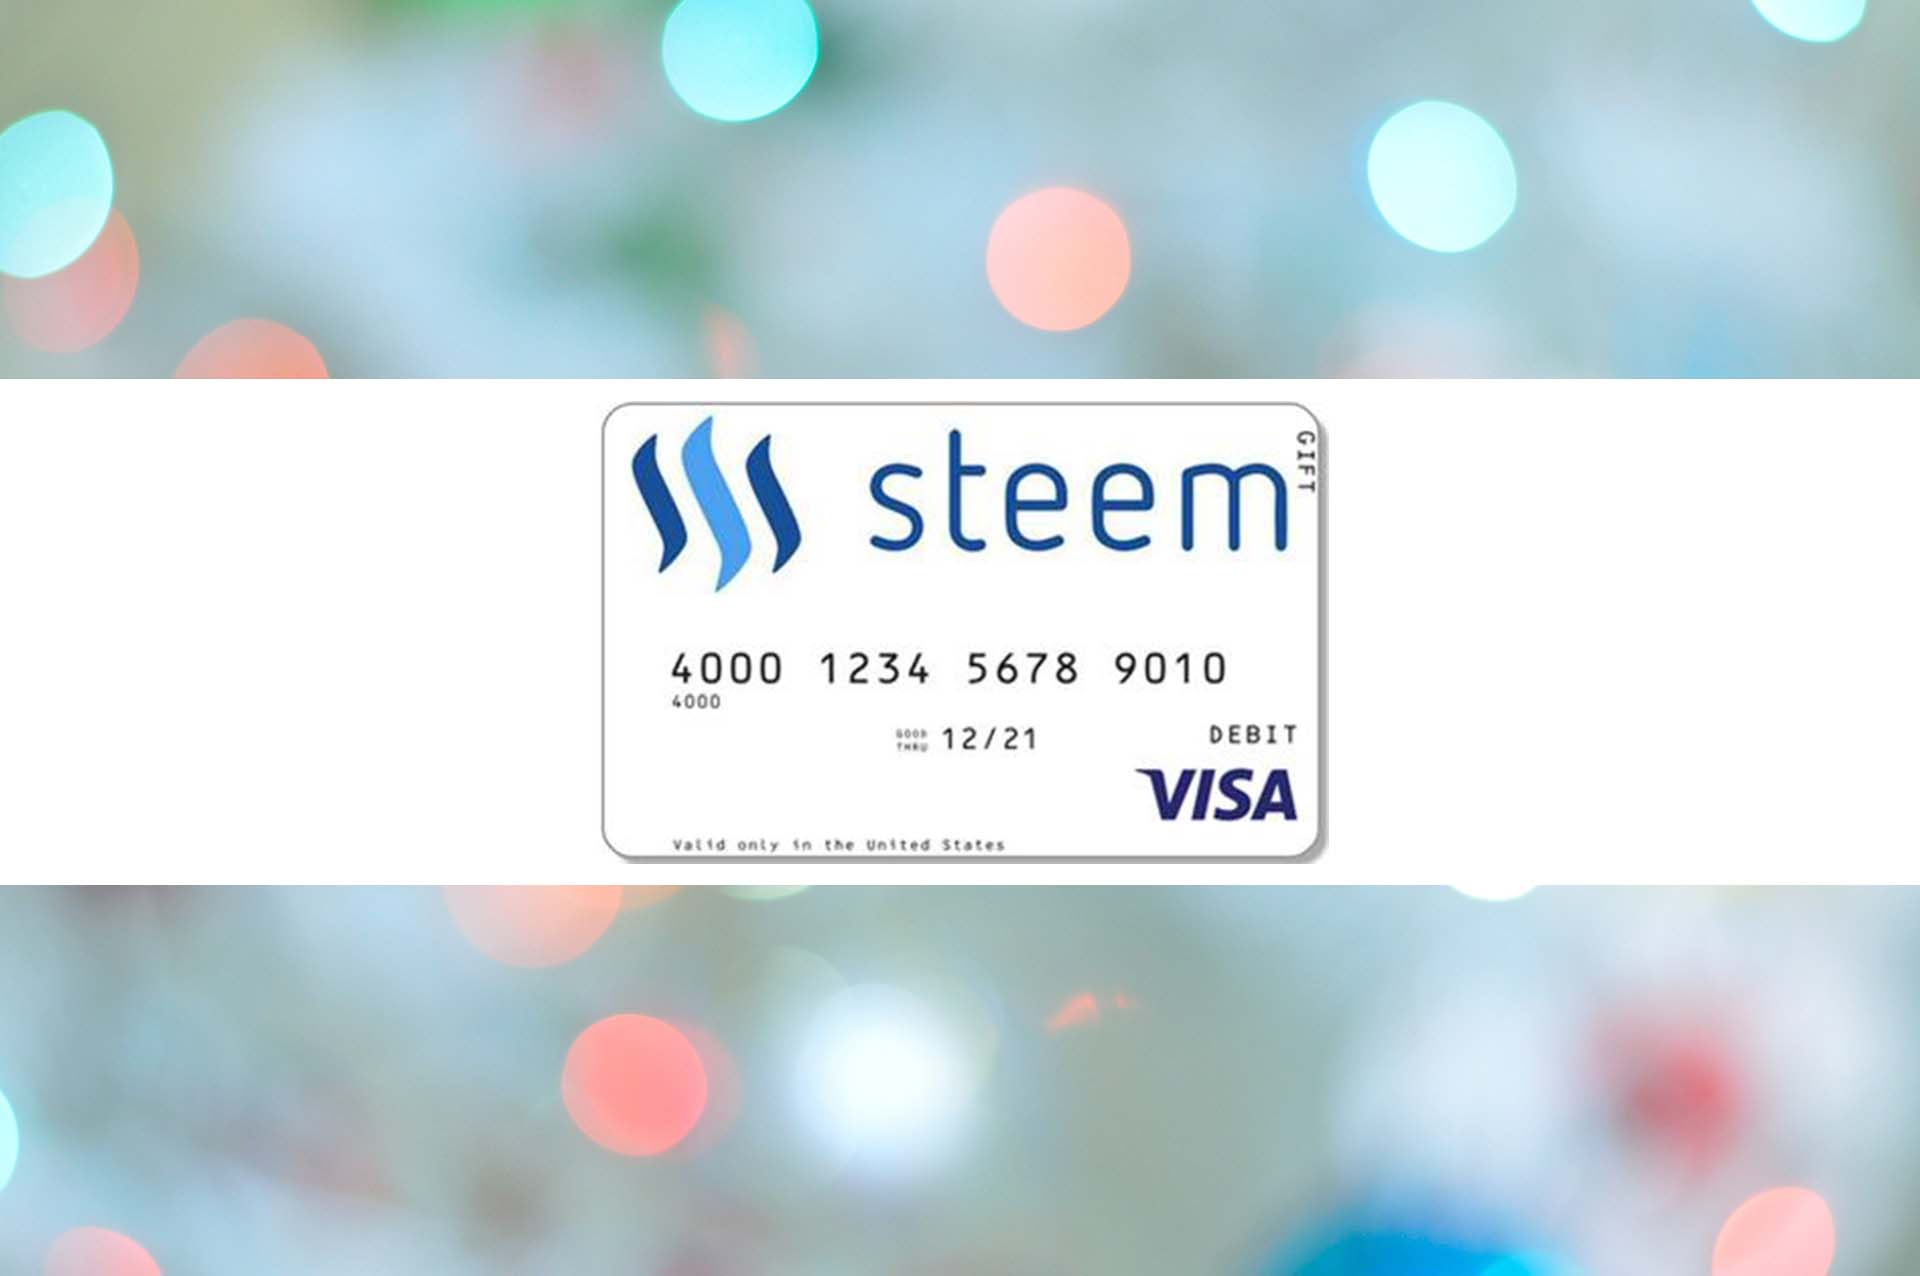 Steem Backed Dollars description